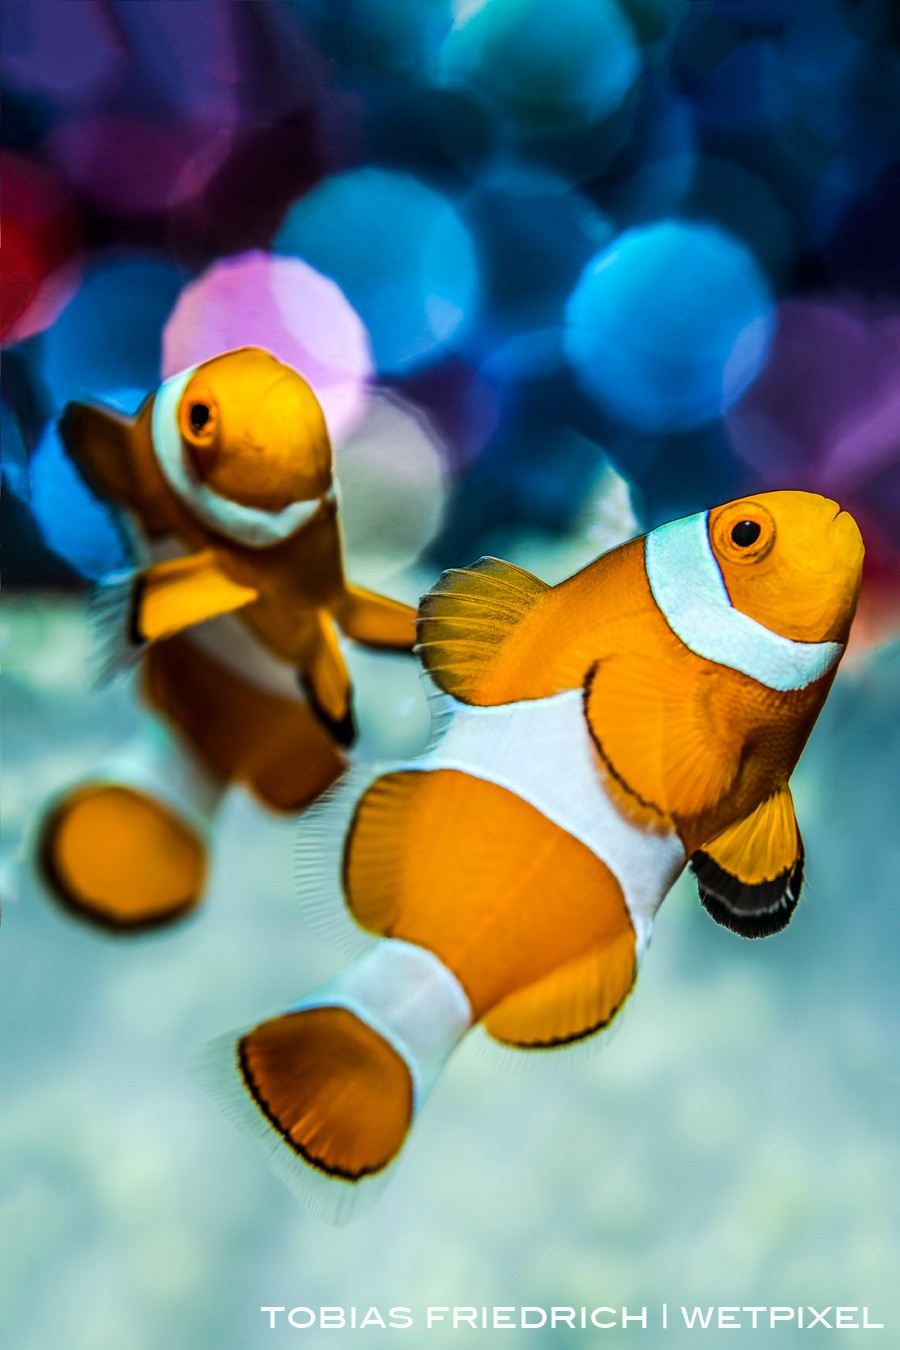 A pair of clownfish (*Amphiprion ocellaris*) with bubble bokeh background